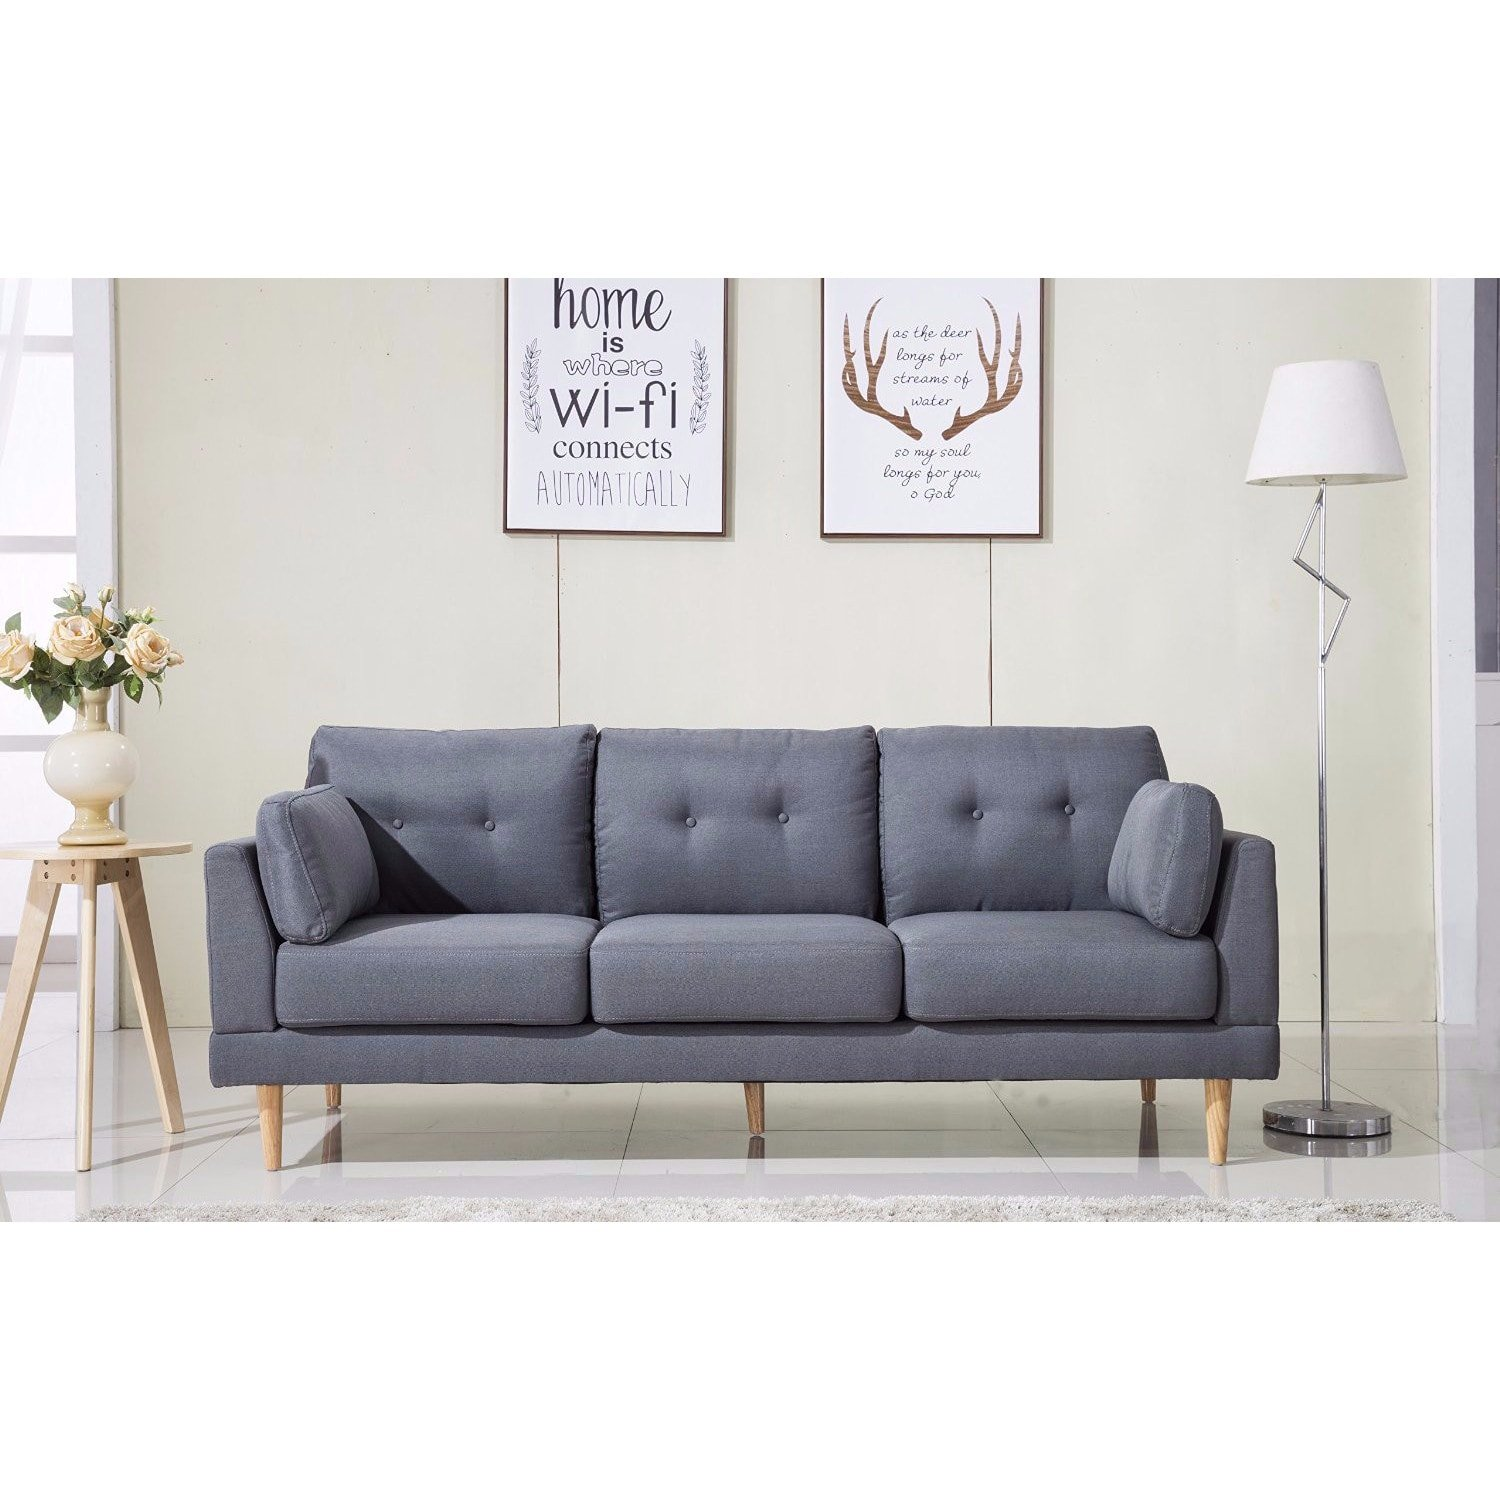 Amazon com madison home mid century modern ultra plush linen fabric sofa grey kitchen dining